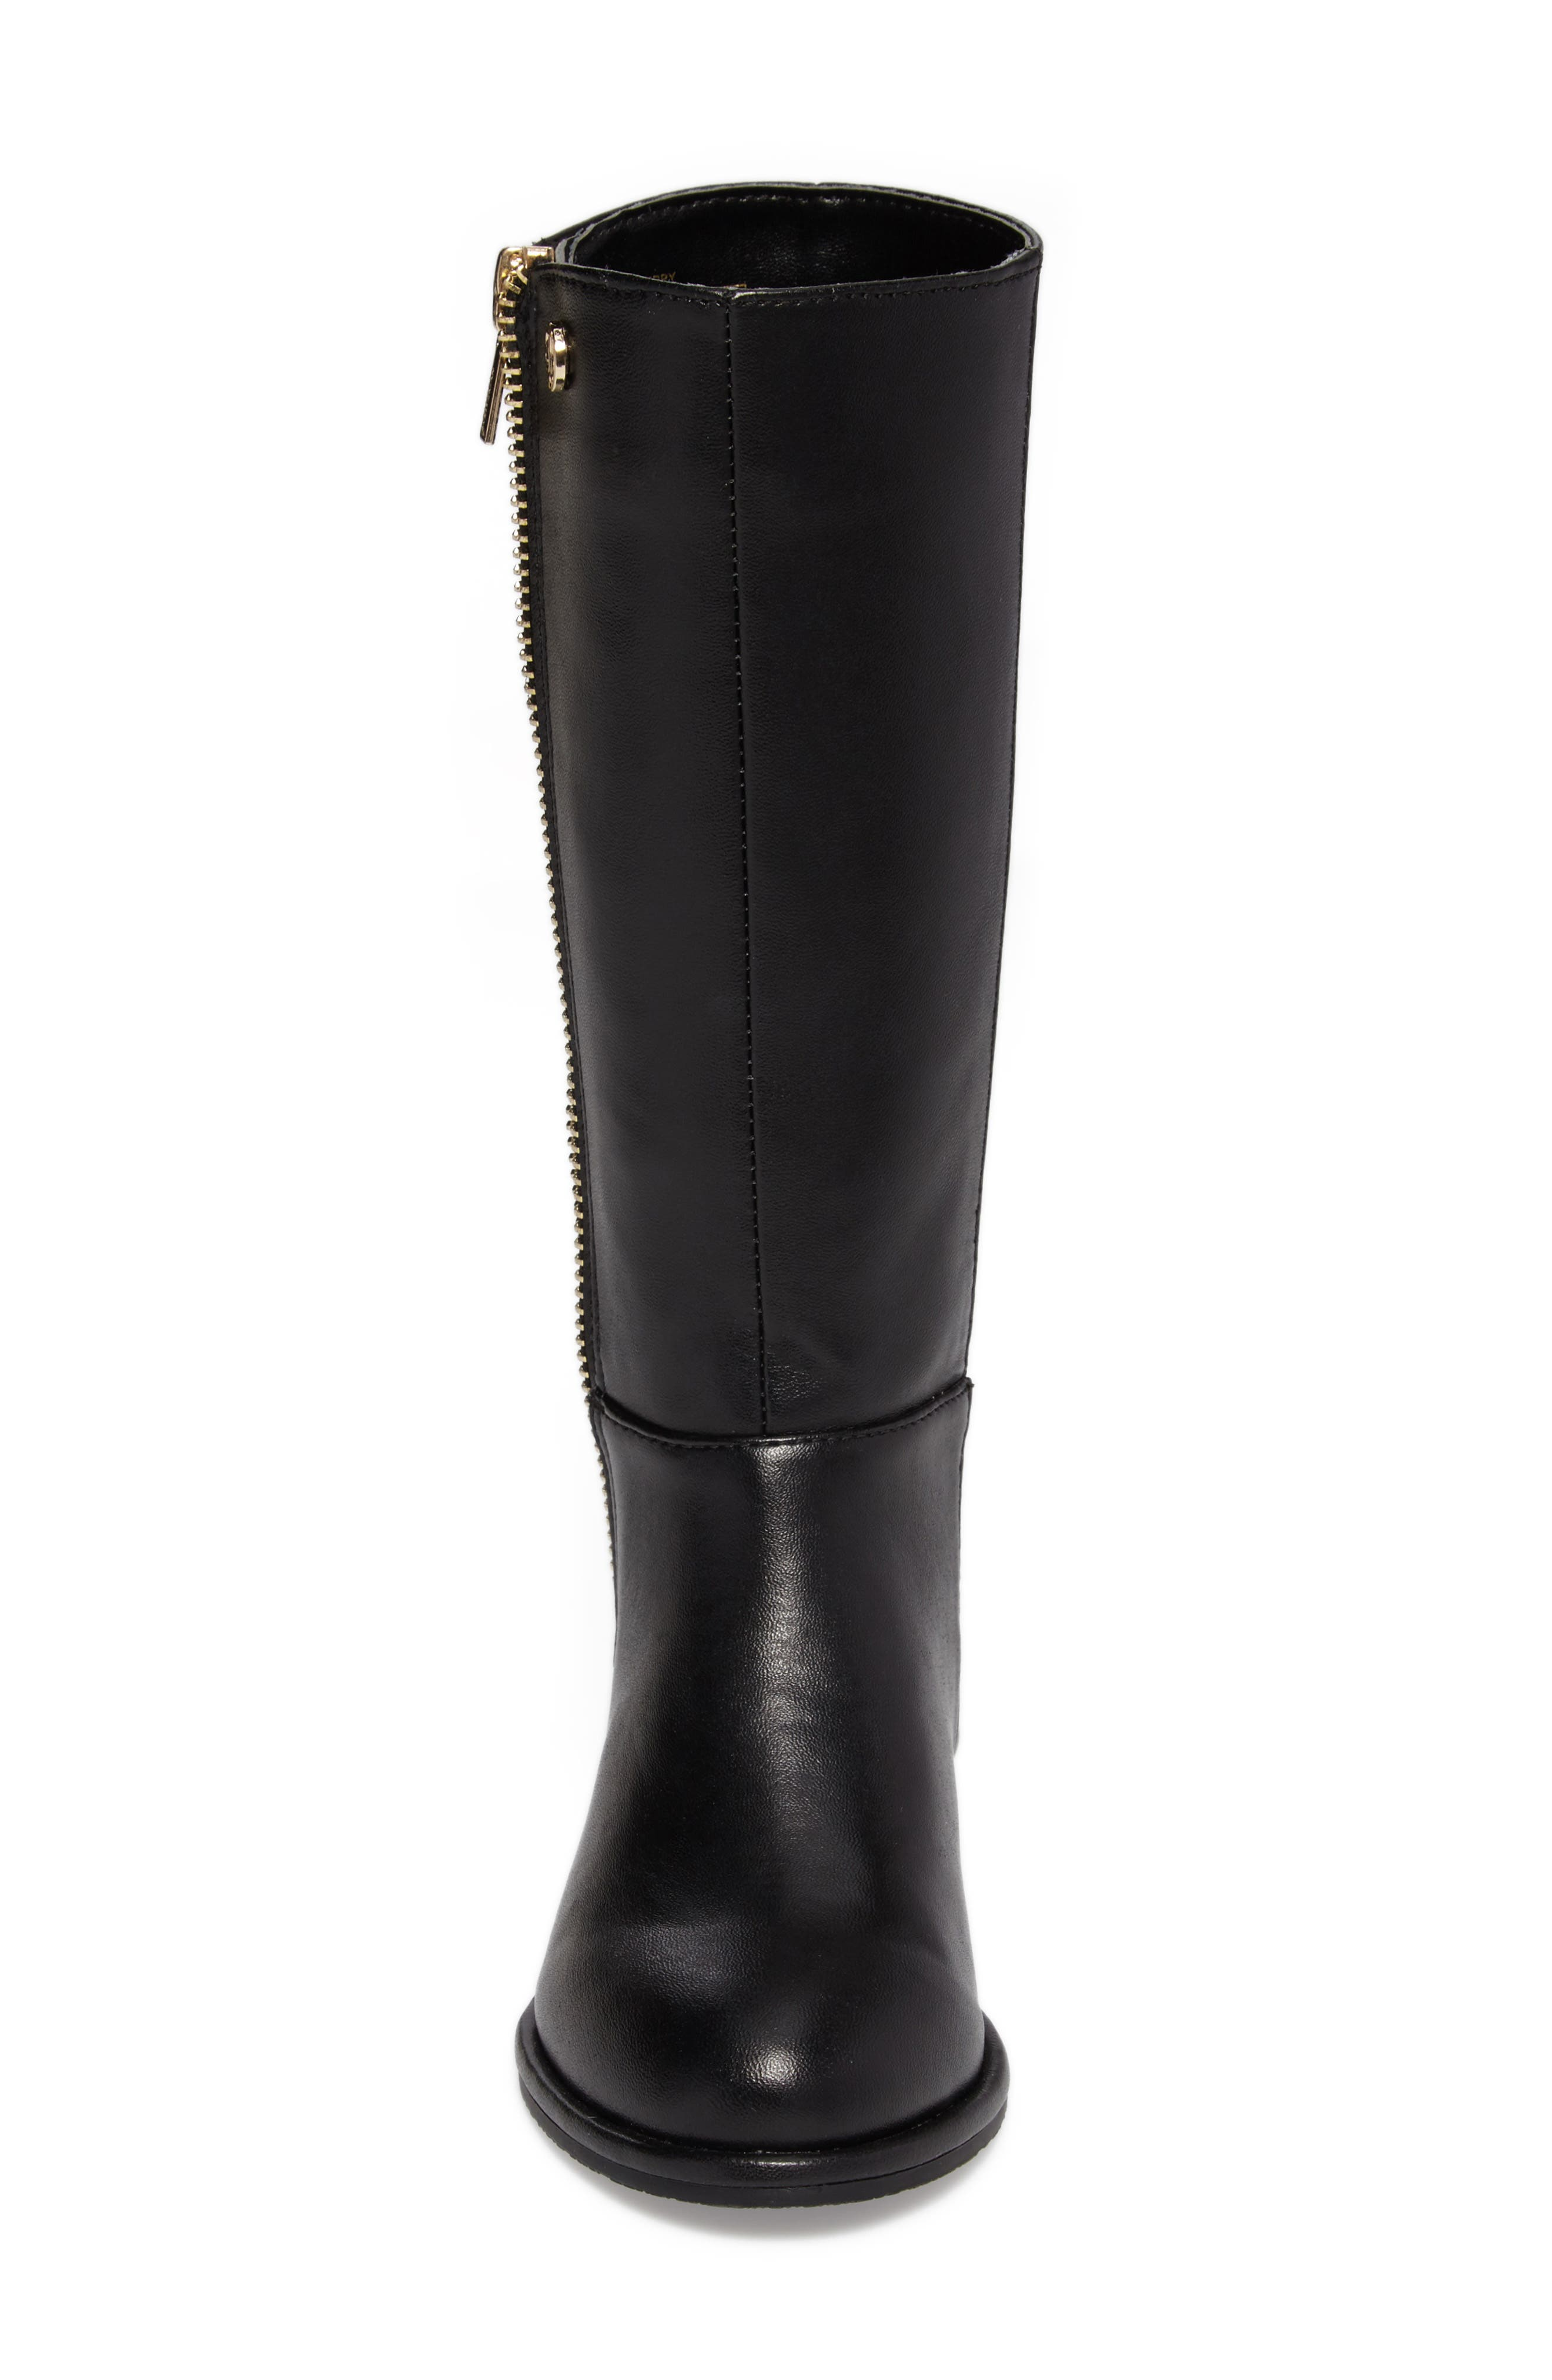 Lowland Riding Boot,                             Alternate thumbnail 4, color,                             Black Faux Leather